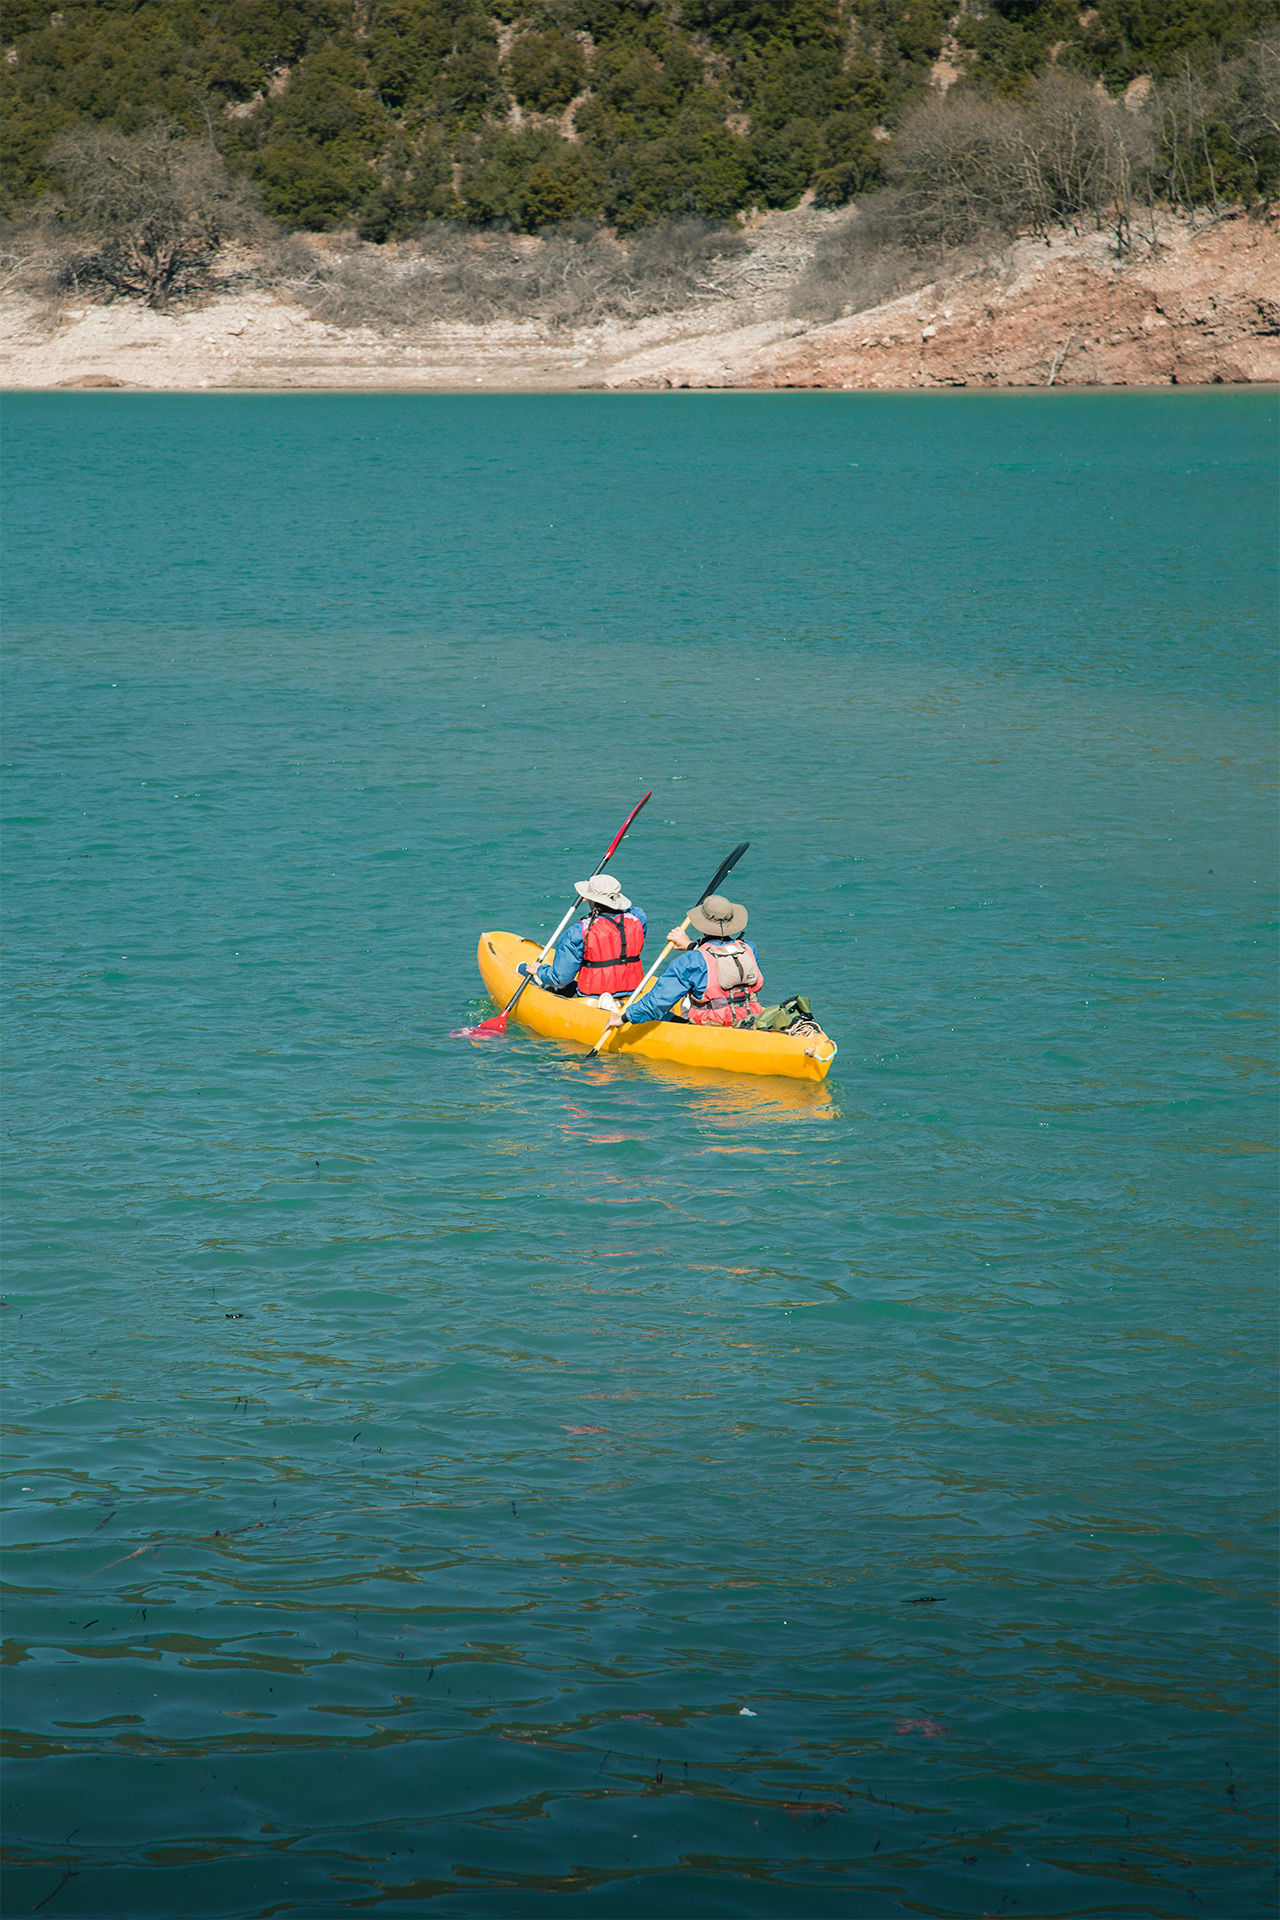 Kayaking or canoeing on the fjord-like Lake Kremaston